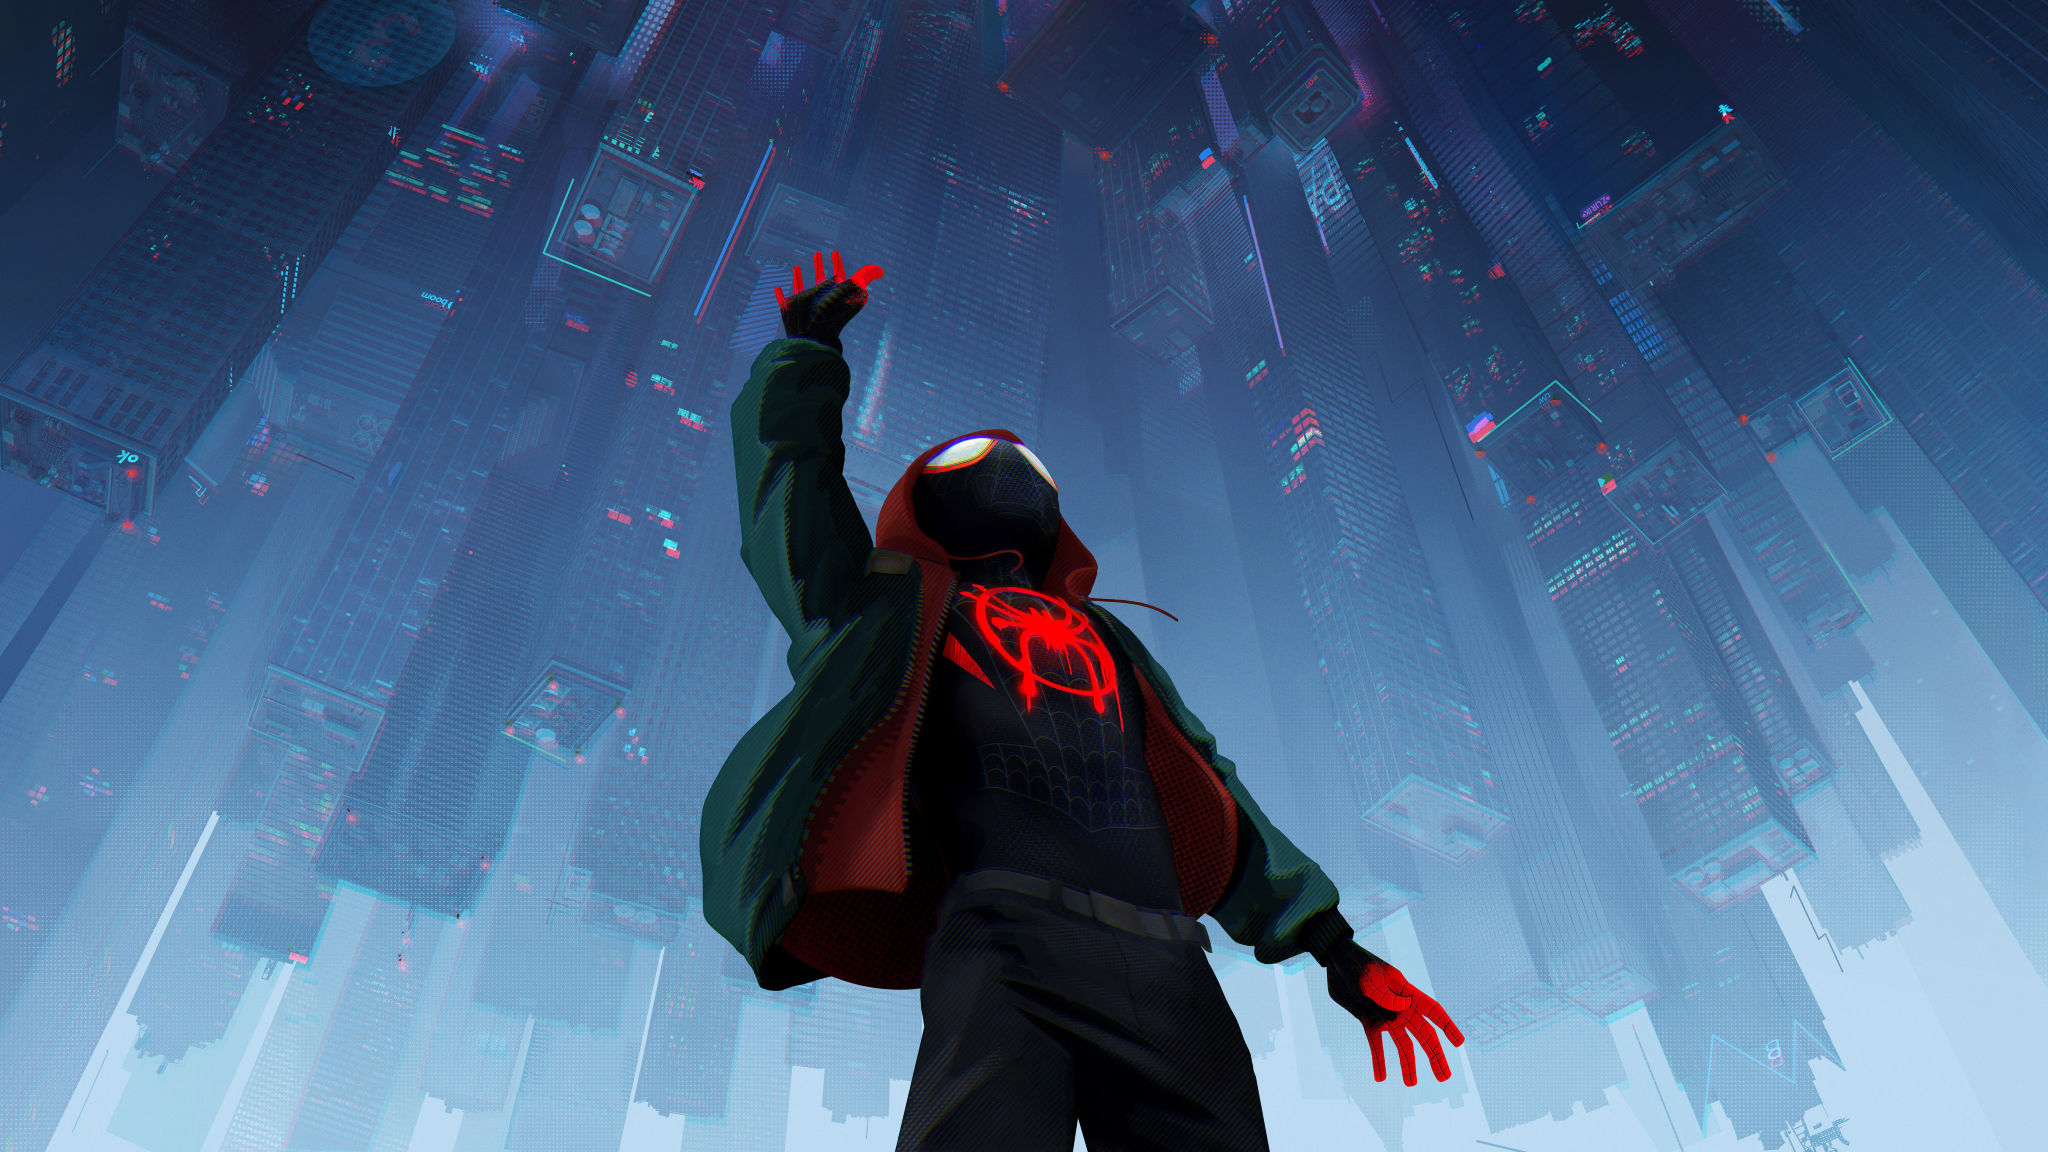 Spiderman Into The Spiderverse 2018 Official Poster, HD 8K Wallpaper